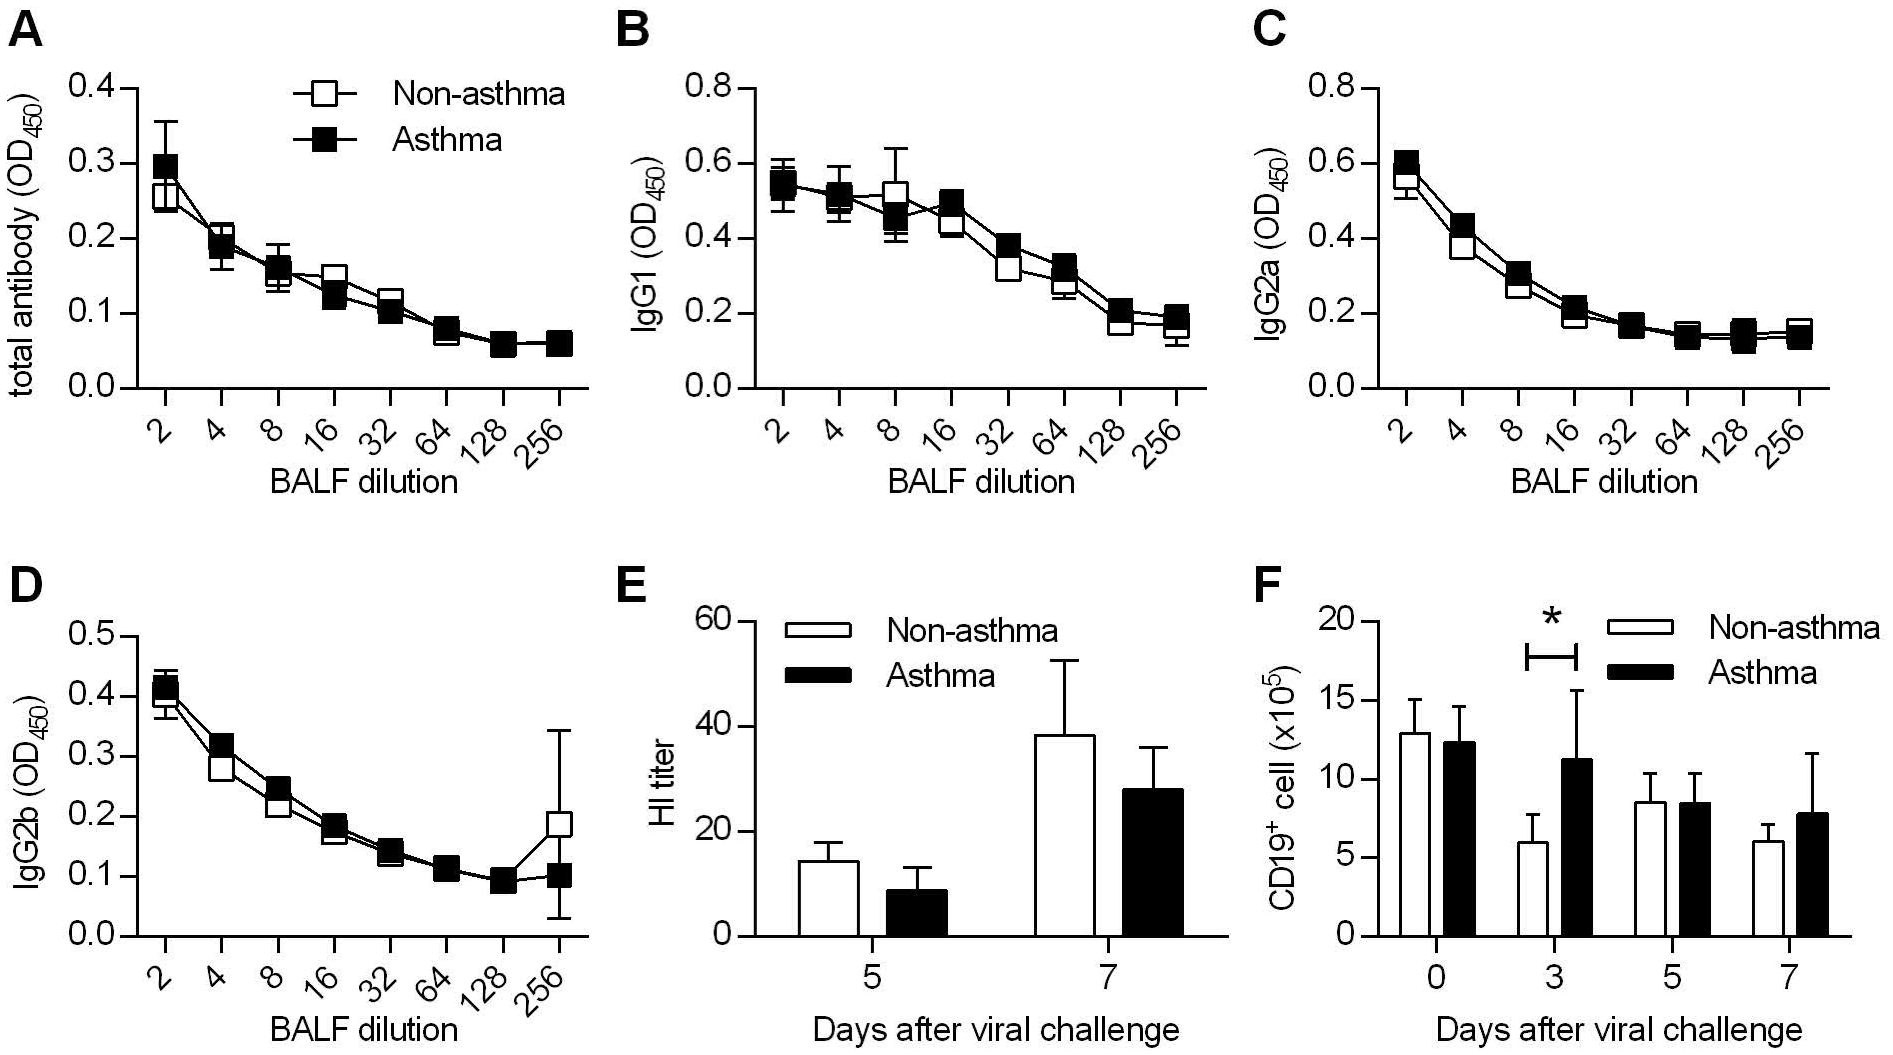 Comparable humoral immunity in non-asthmatic and asthmatic mice.